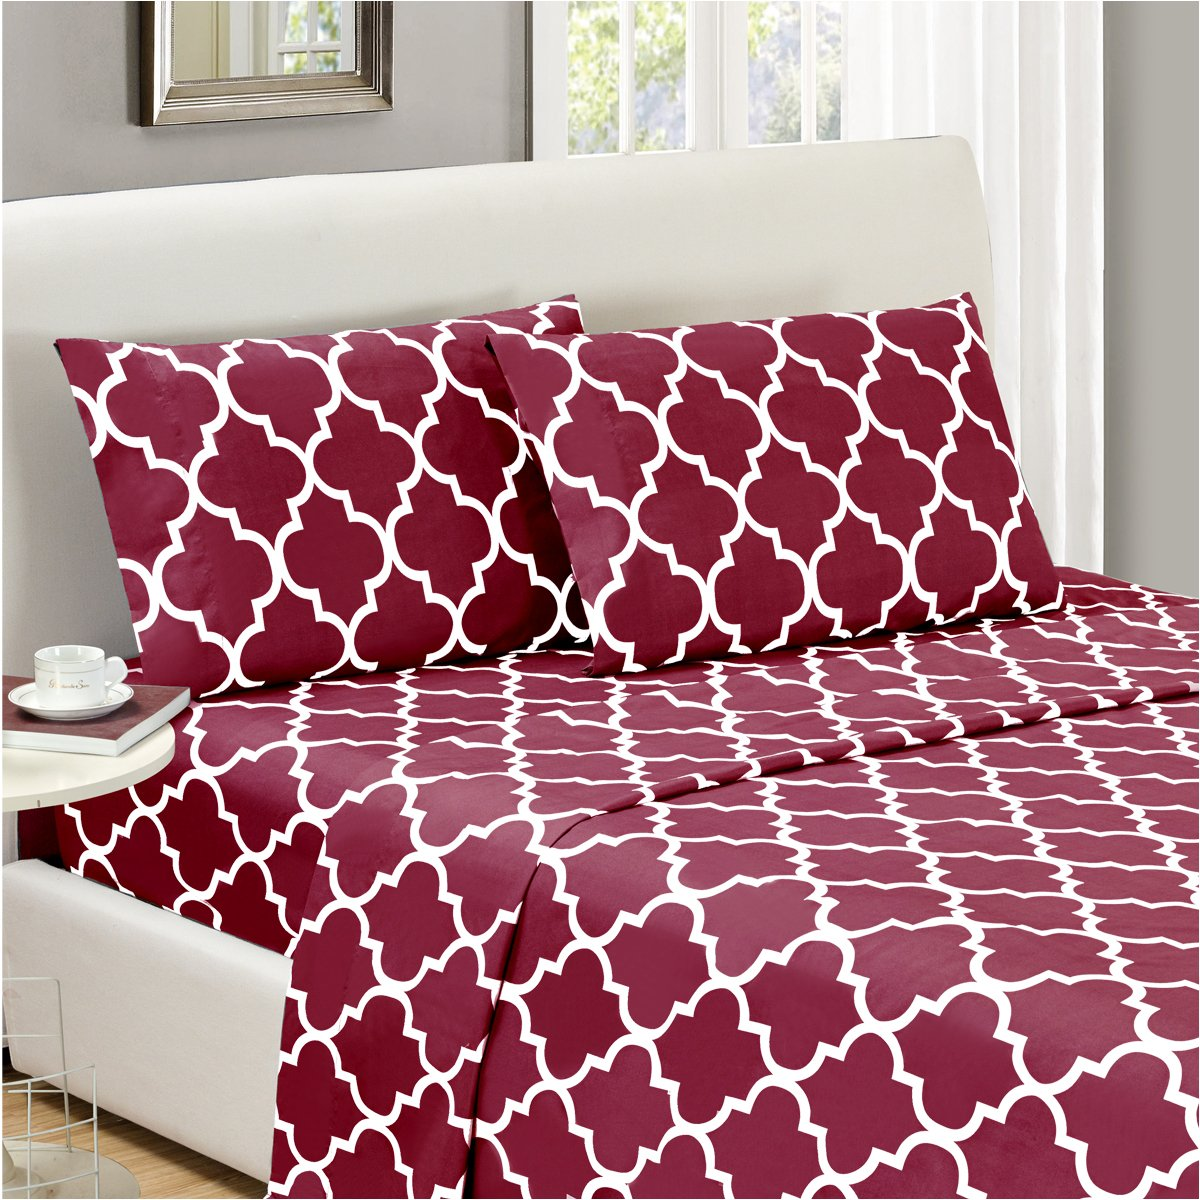 Mellanni Bed Sheet Set Full-Burgundy - HIGHEST QUALITY Brushed Microfiber Printed Bedding